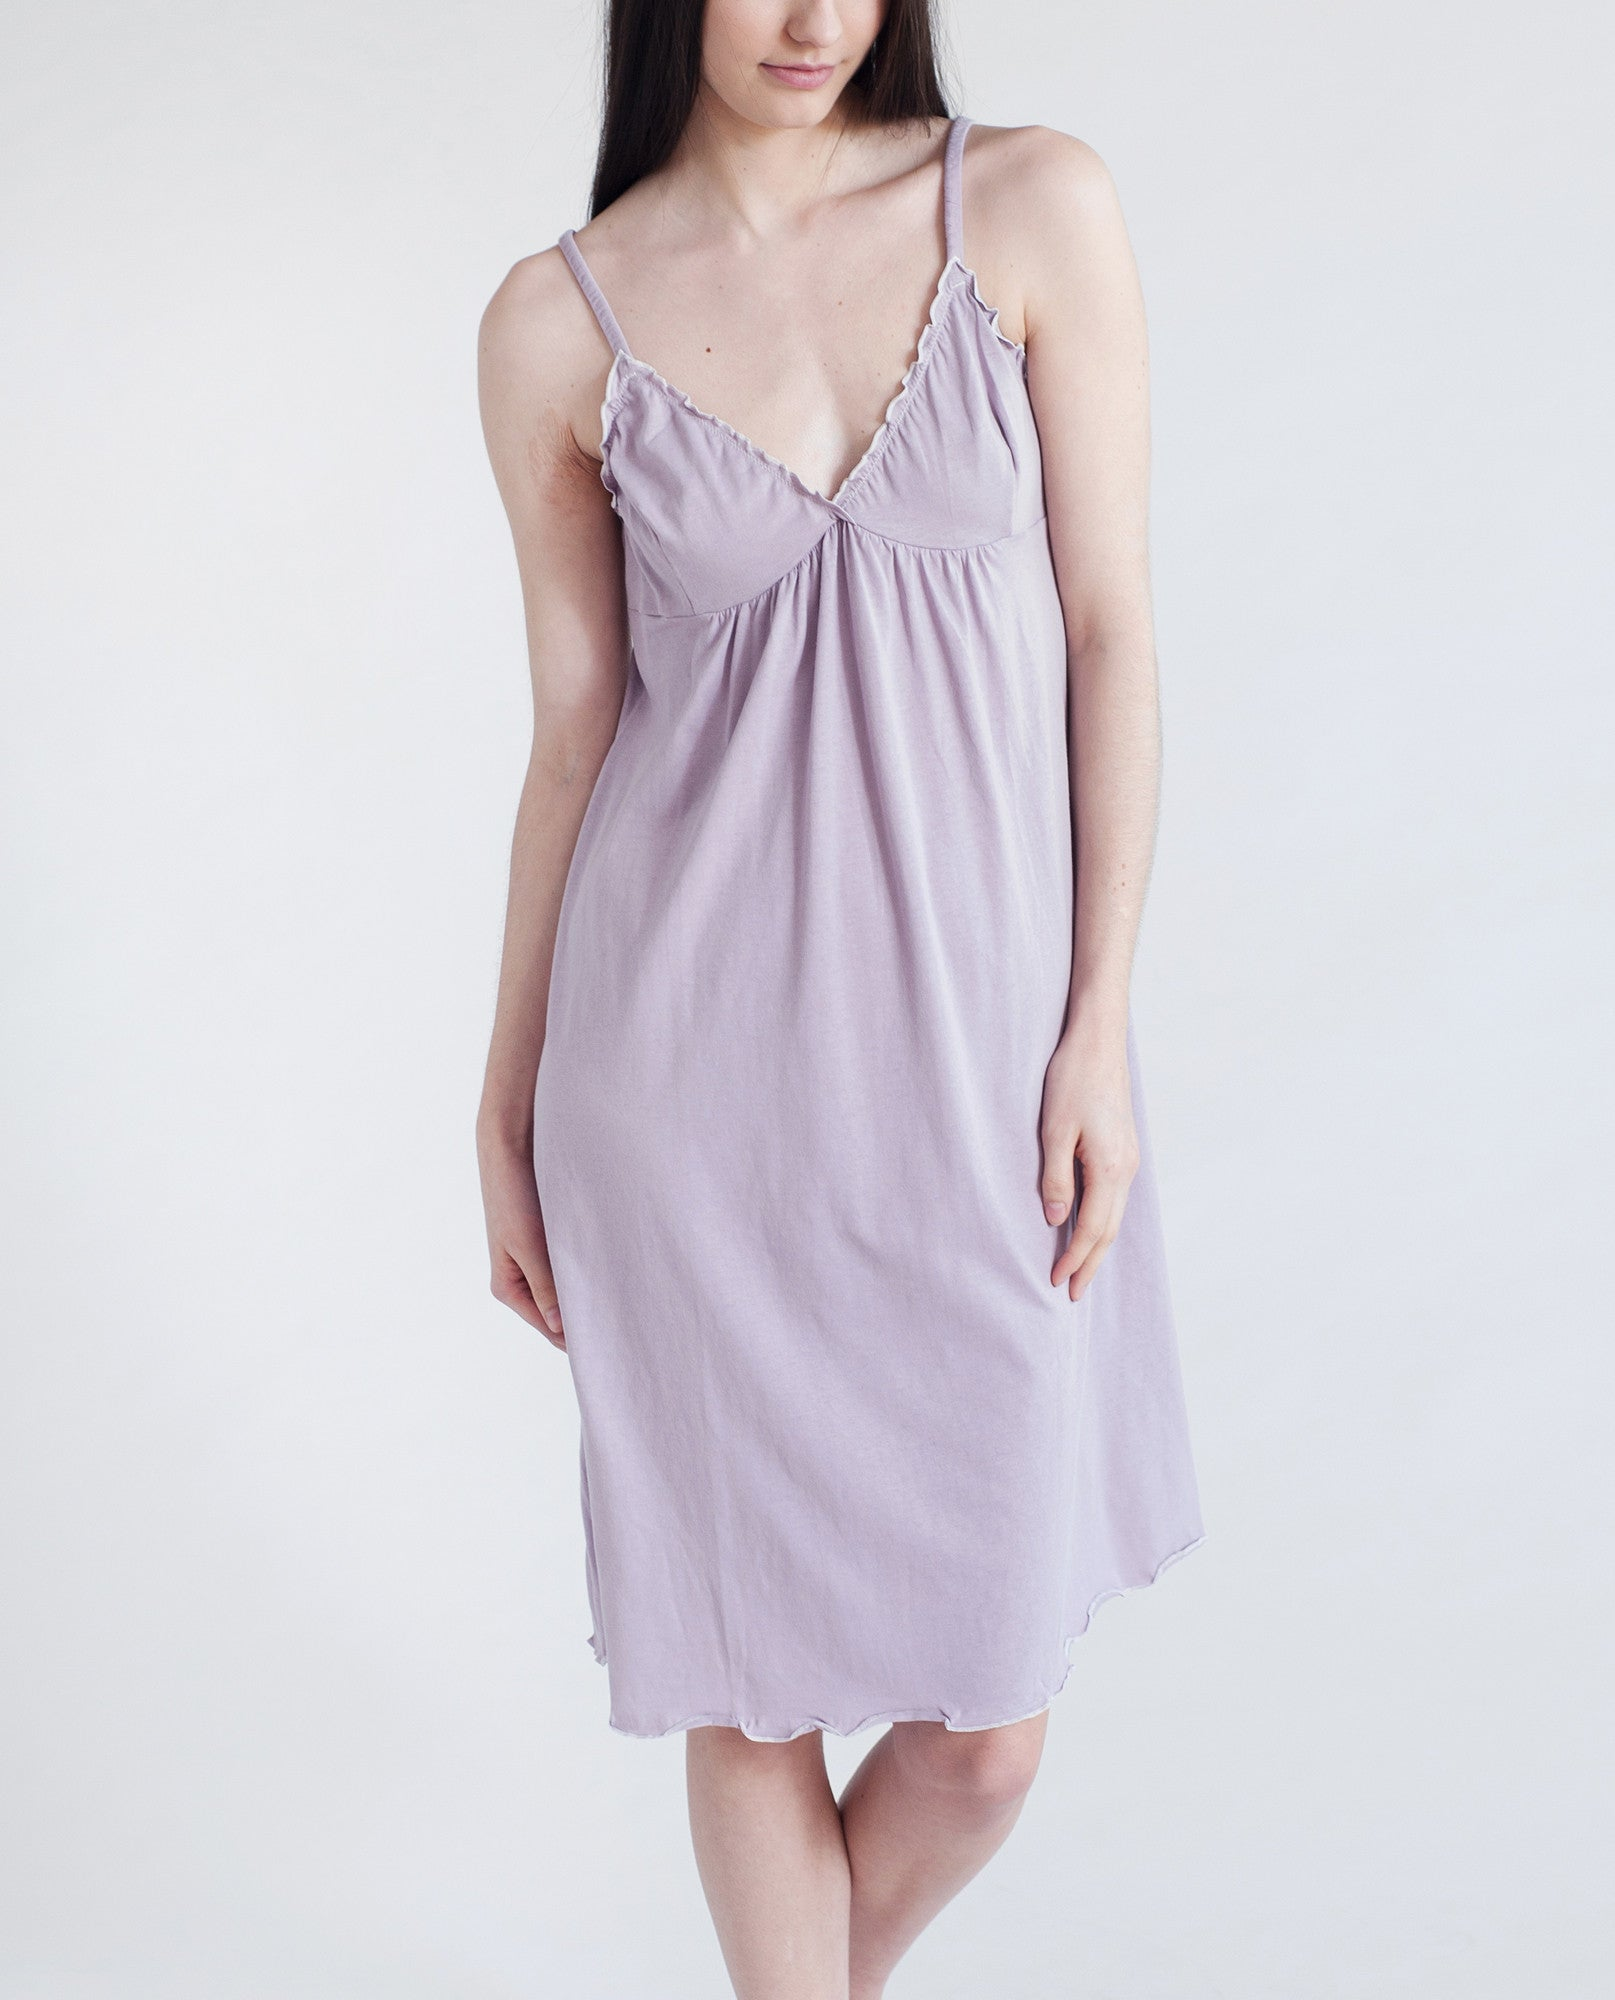 MARYLOU Organic Cotton Nighty In Lilac